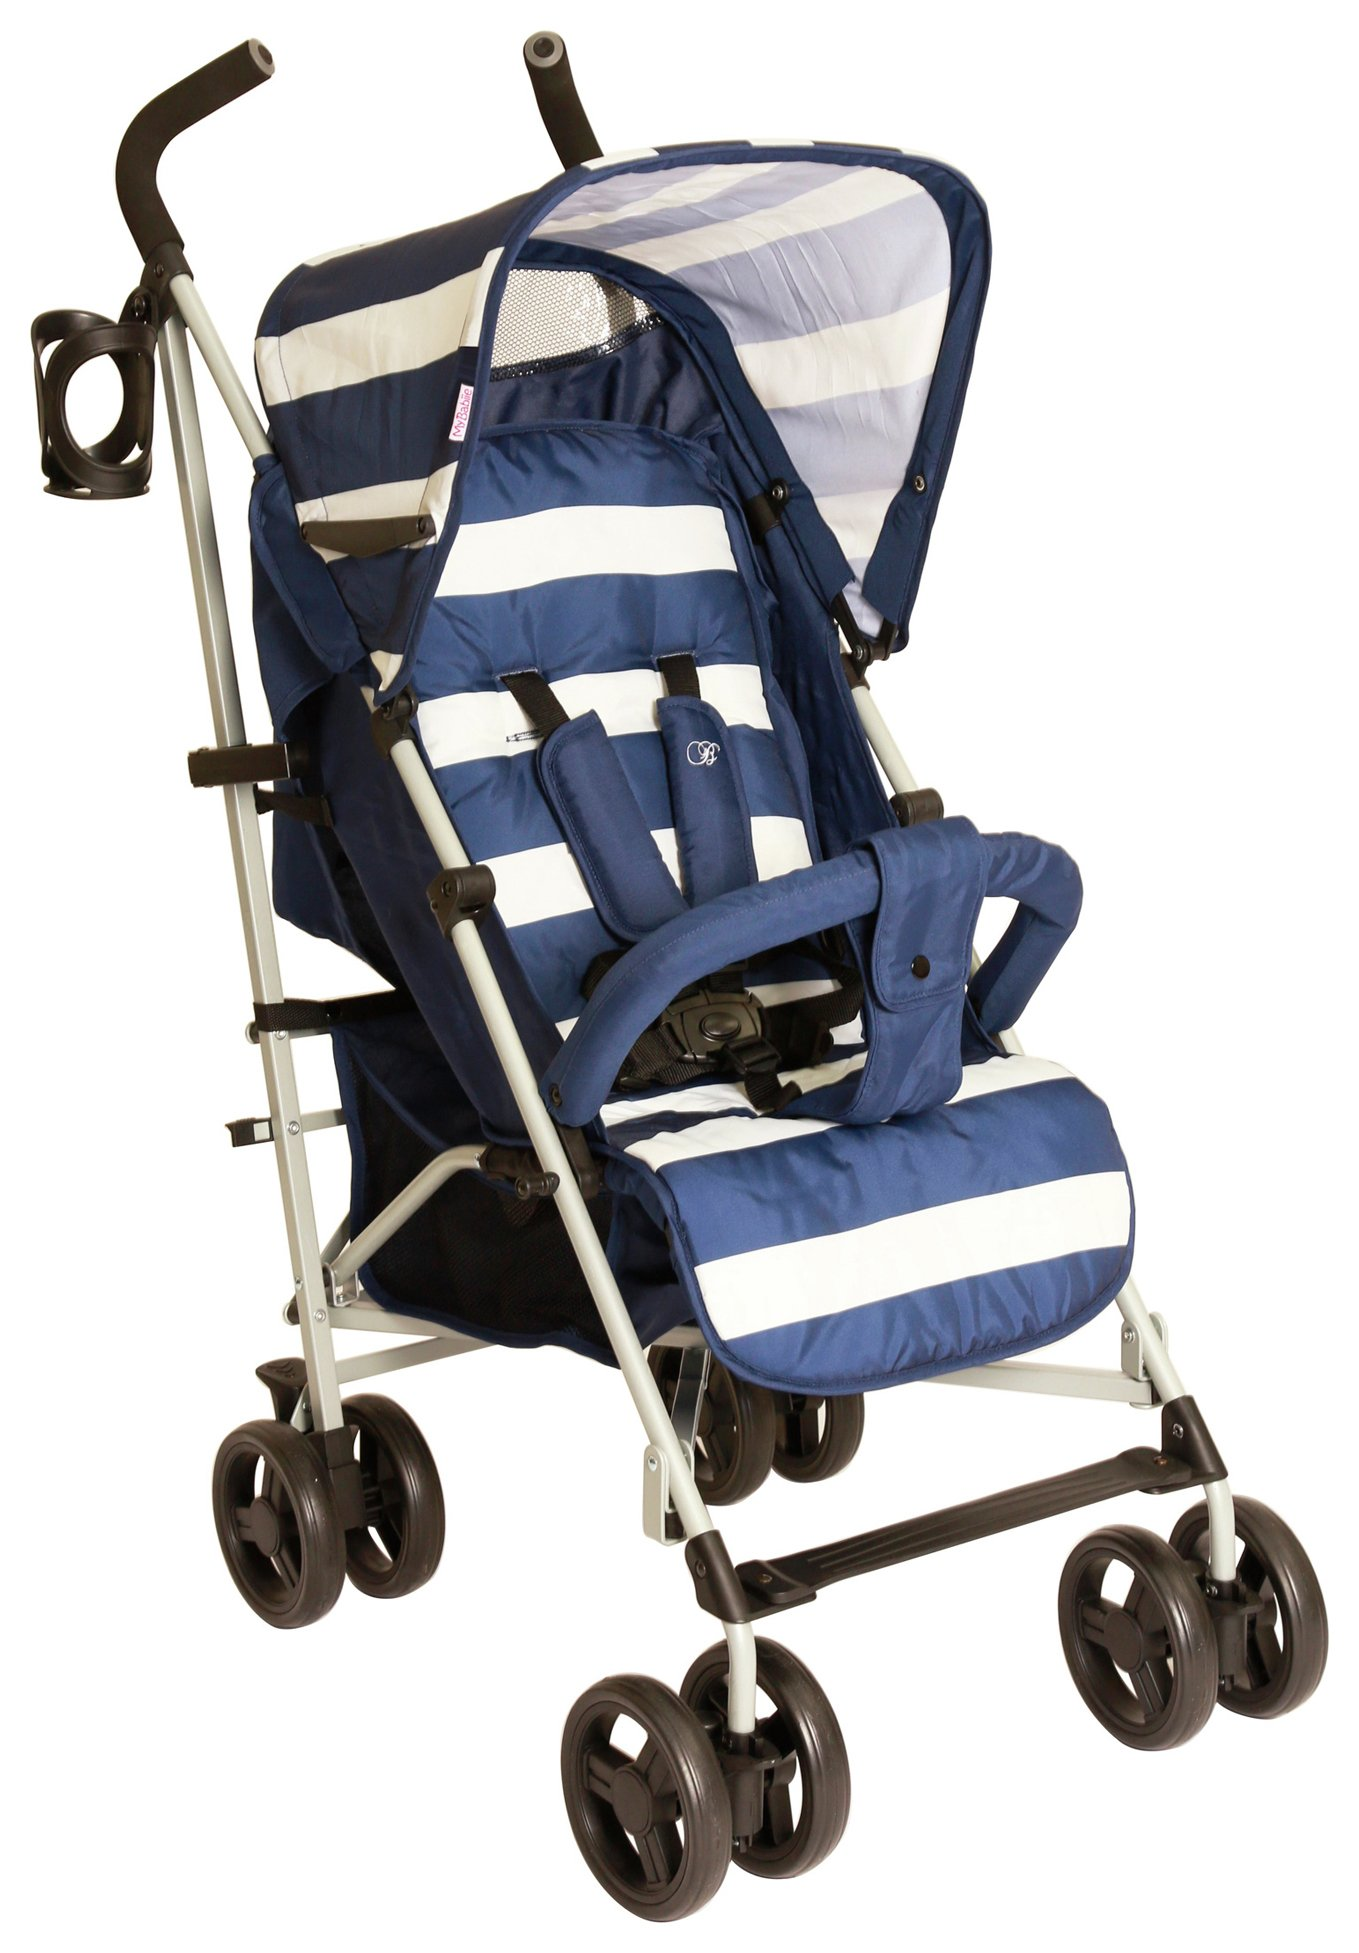 Image of Billie Faiers MB01 Blue Stripe Stroller.